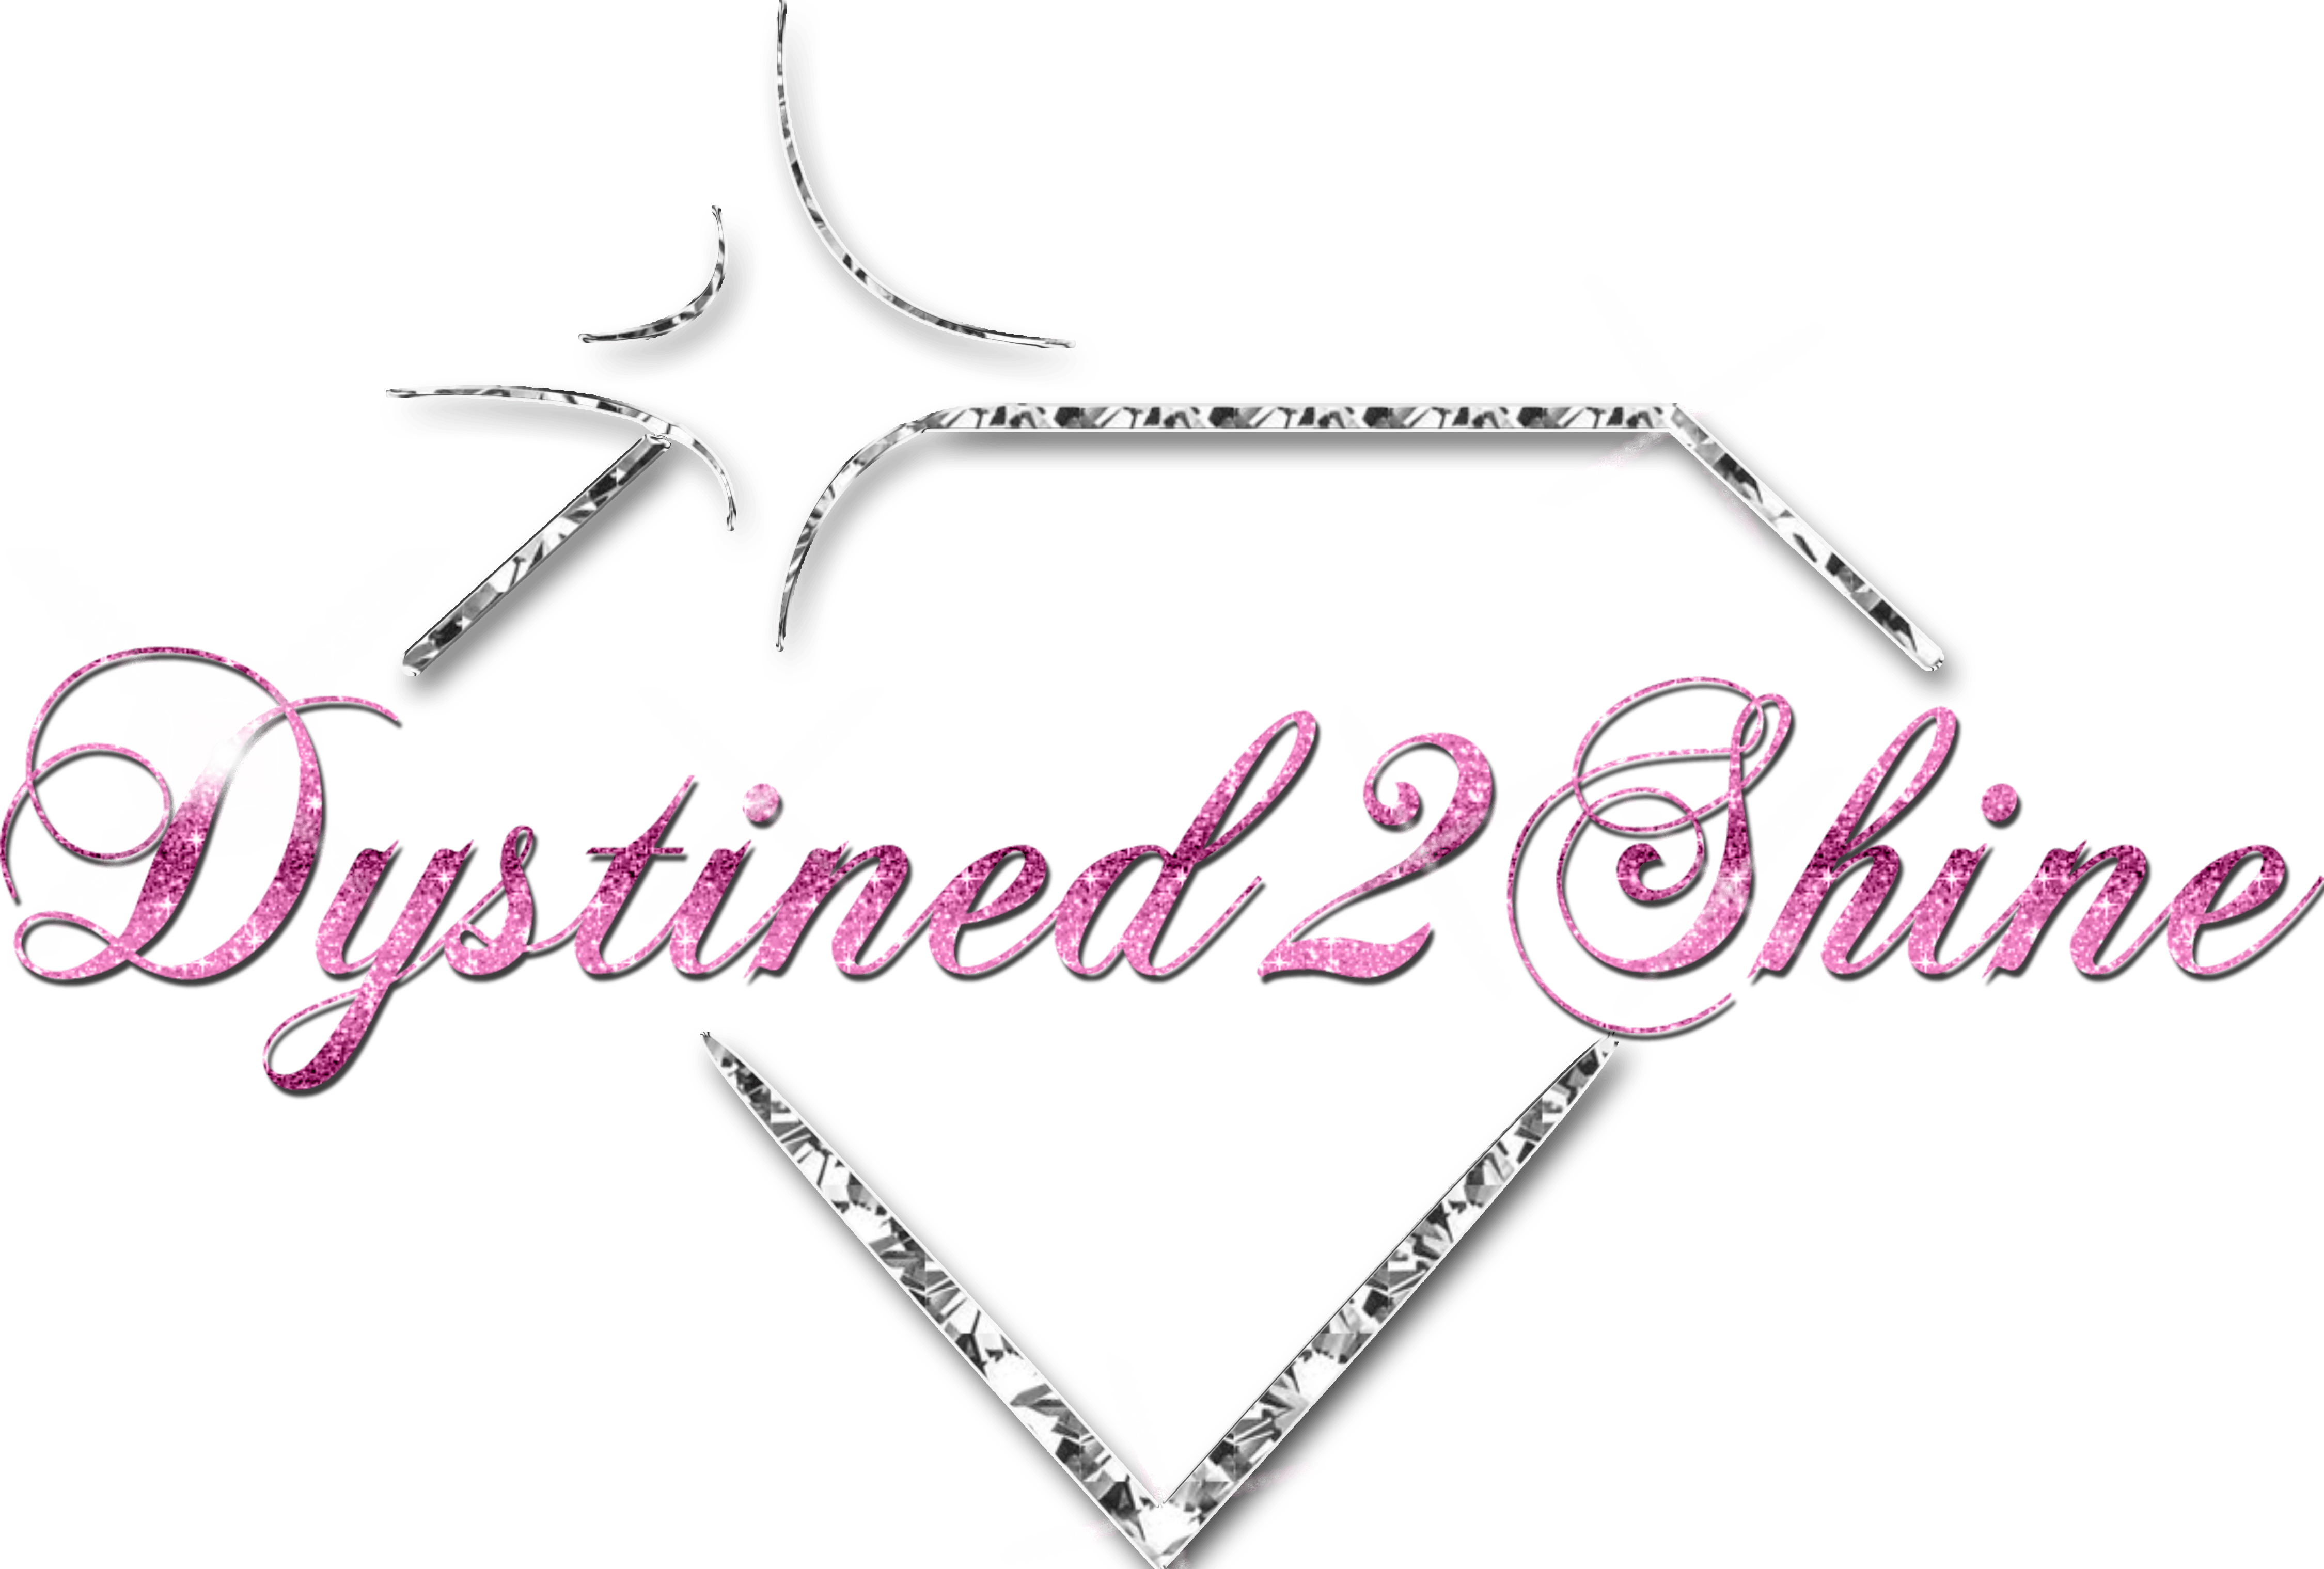 Dystined2Shine